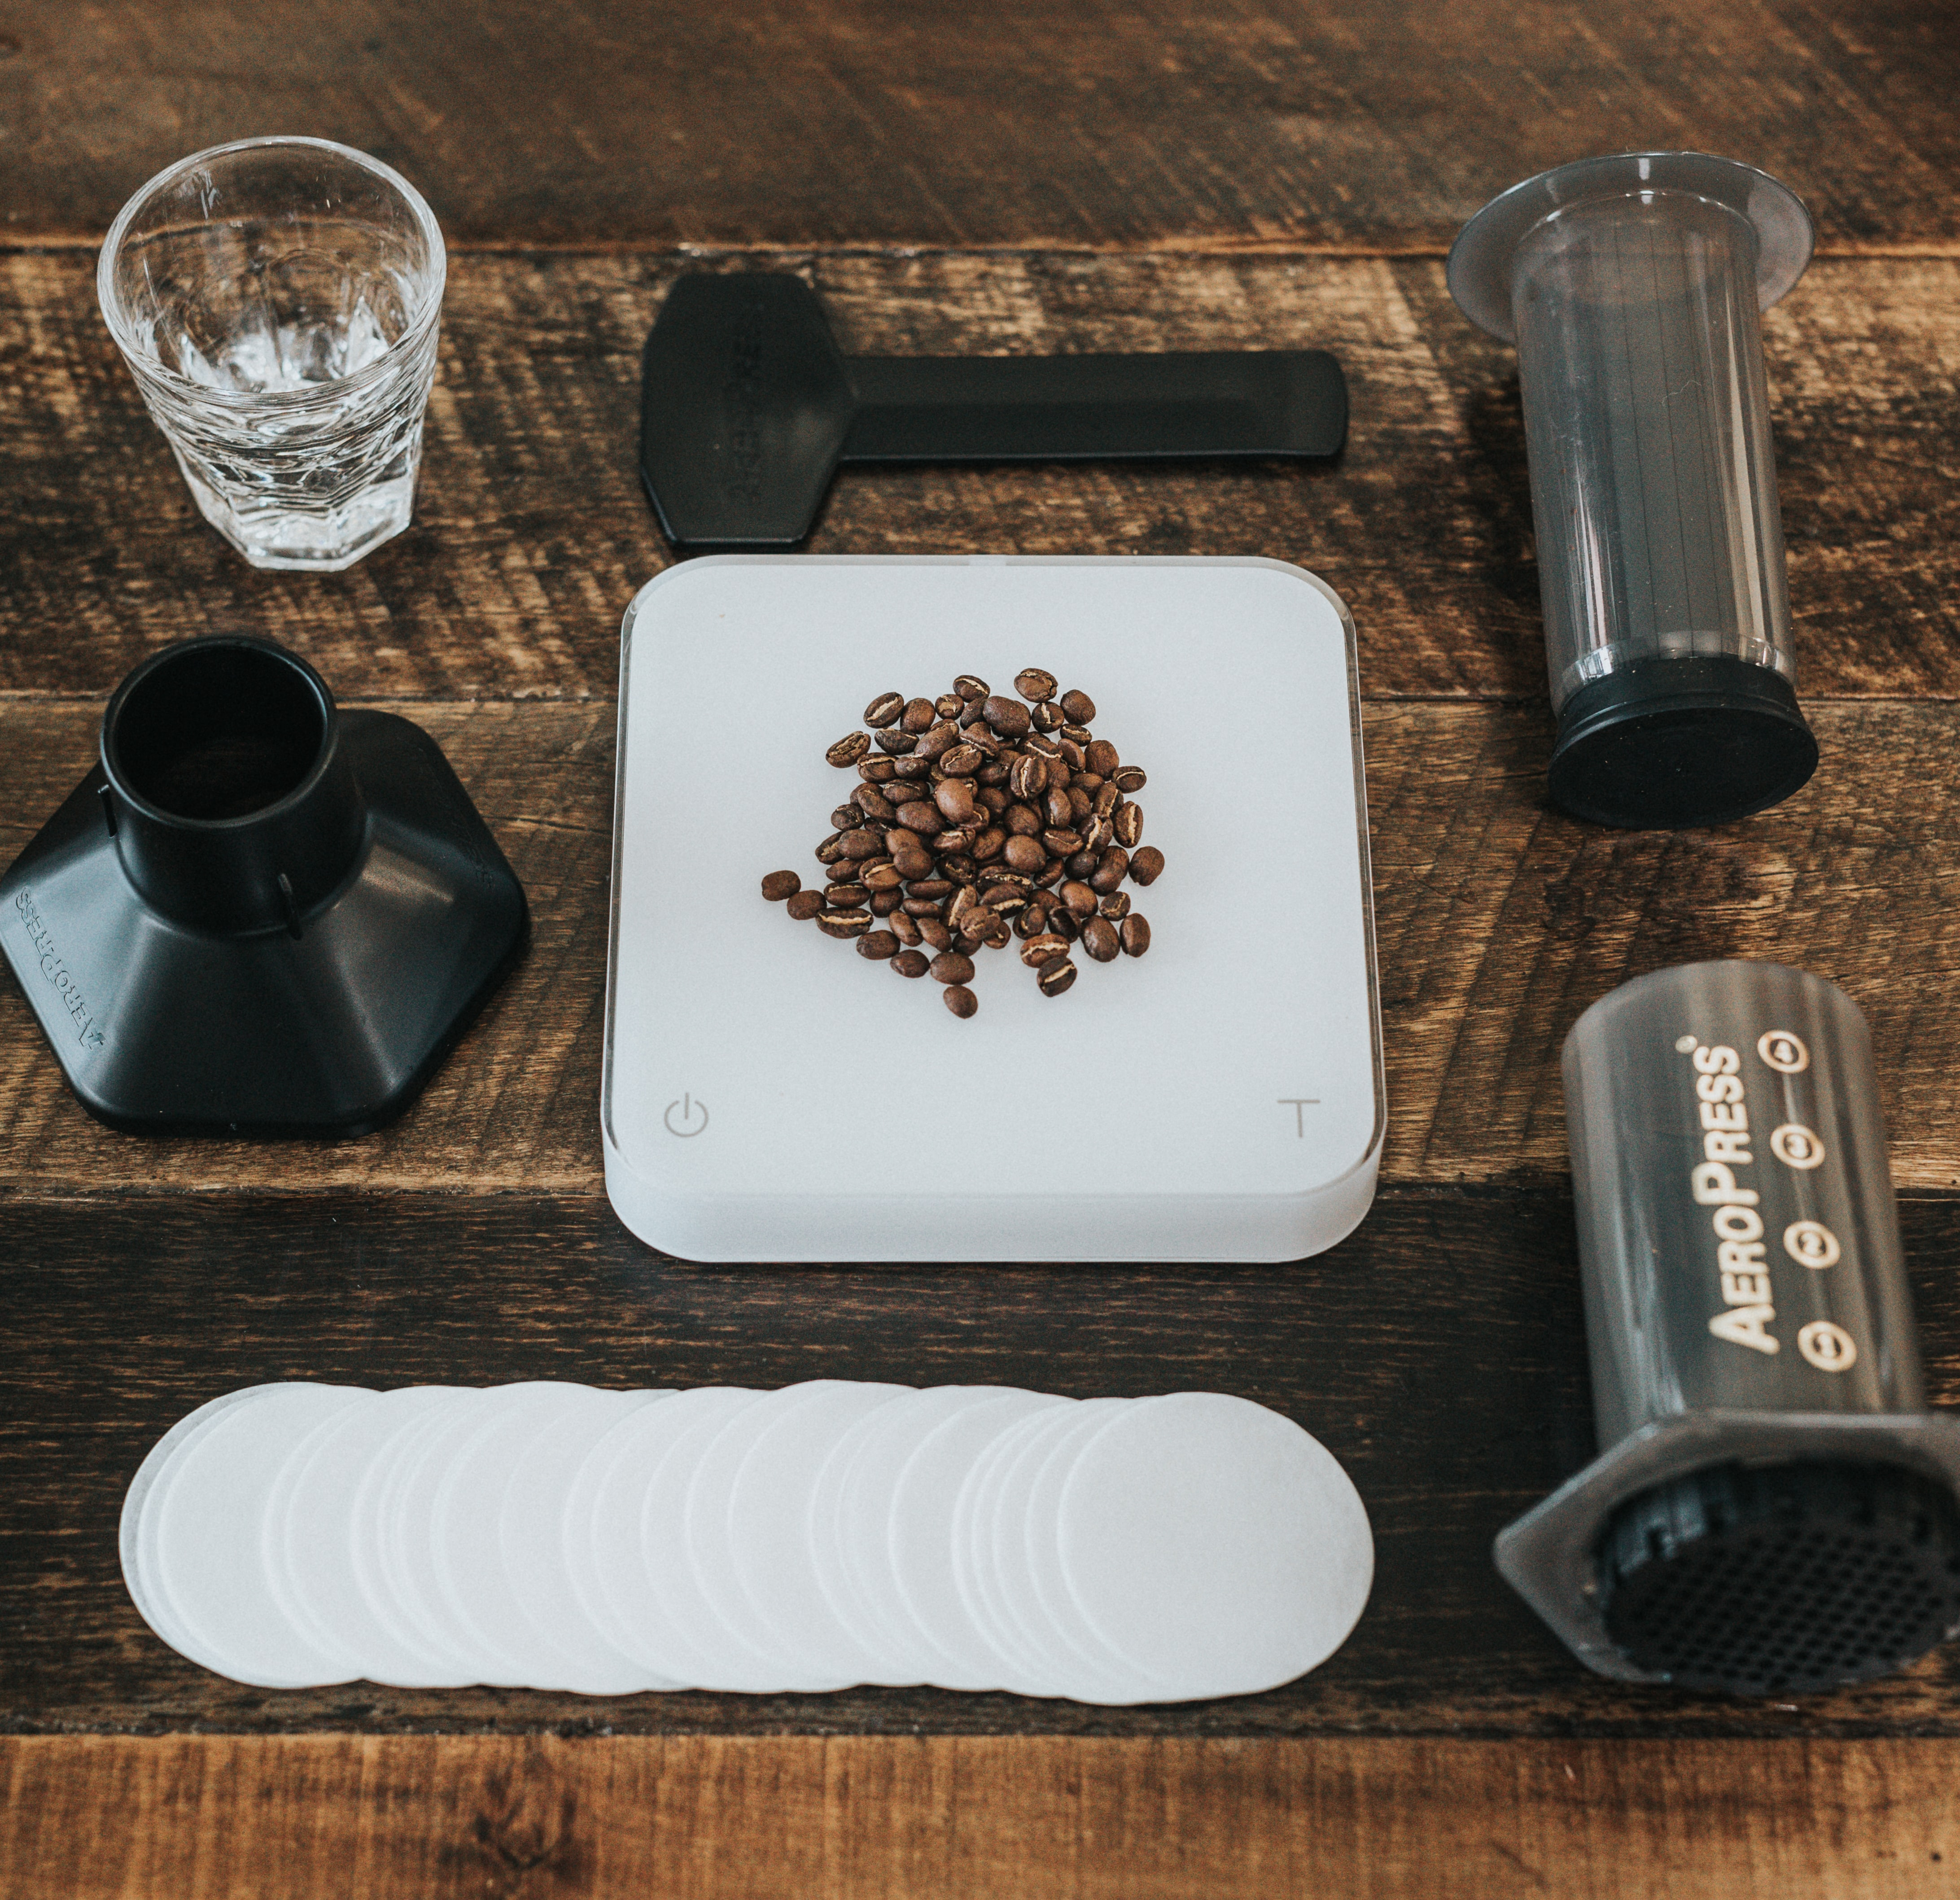 Aeropress coffee press kit disassembled on a wooden table with coffee beans in the center